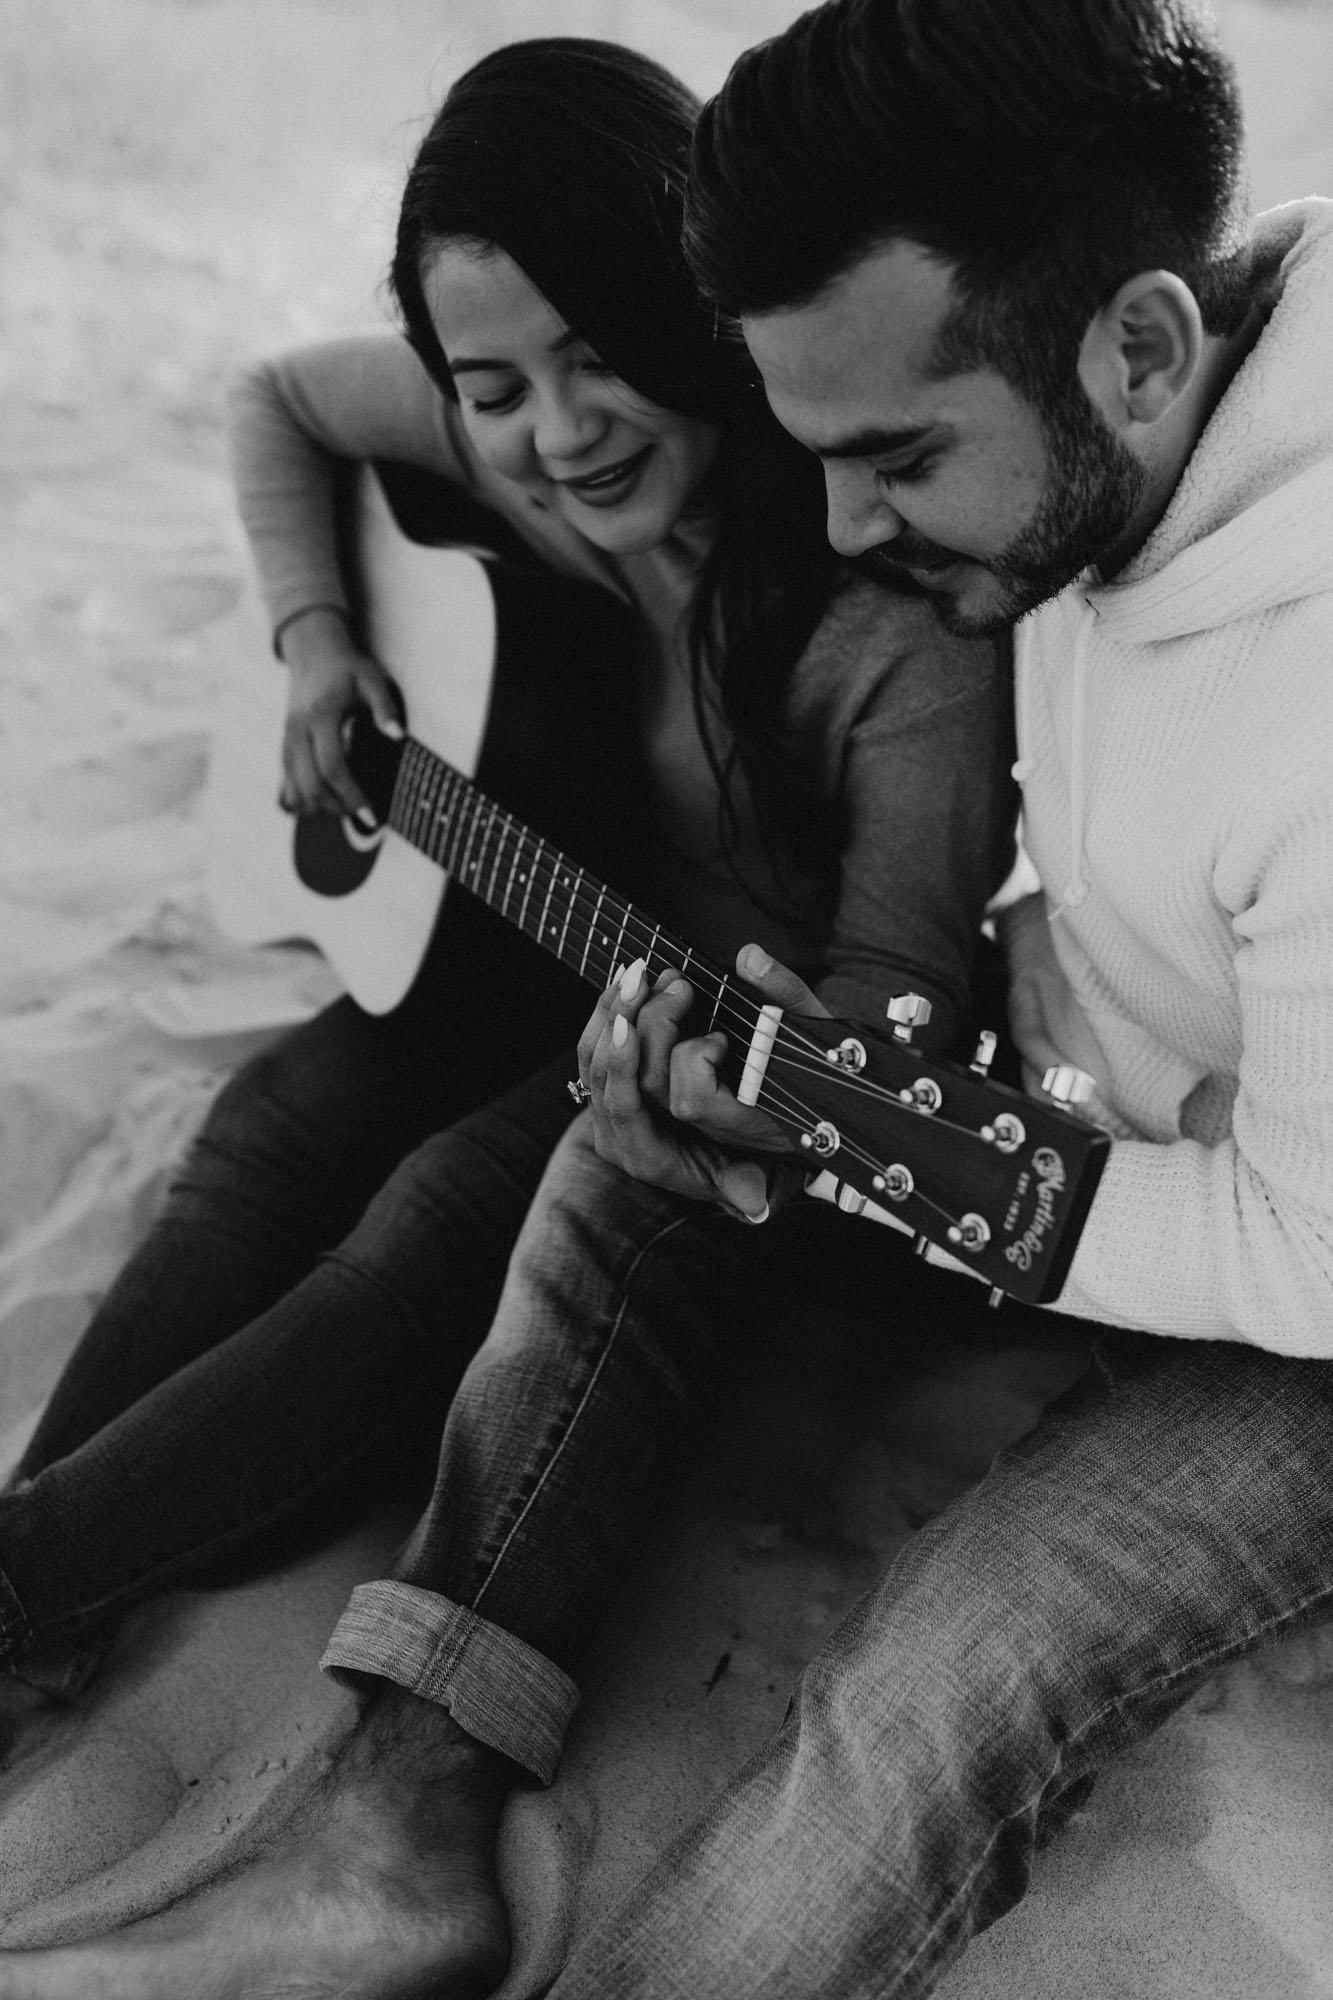 Natural candid photos of couple playing their guitar during an engagement session at sand hills